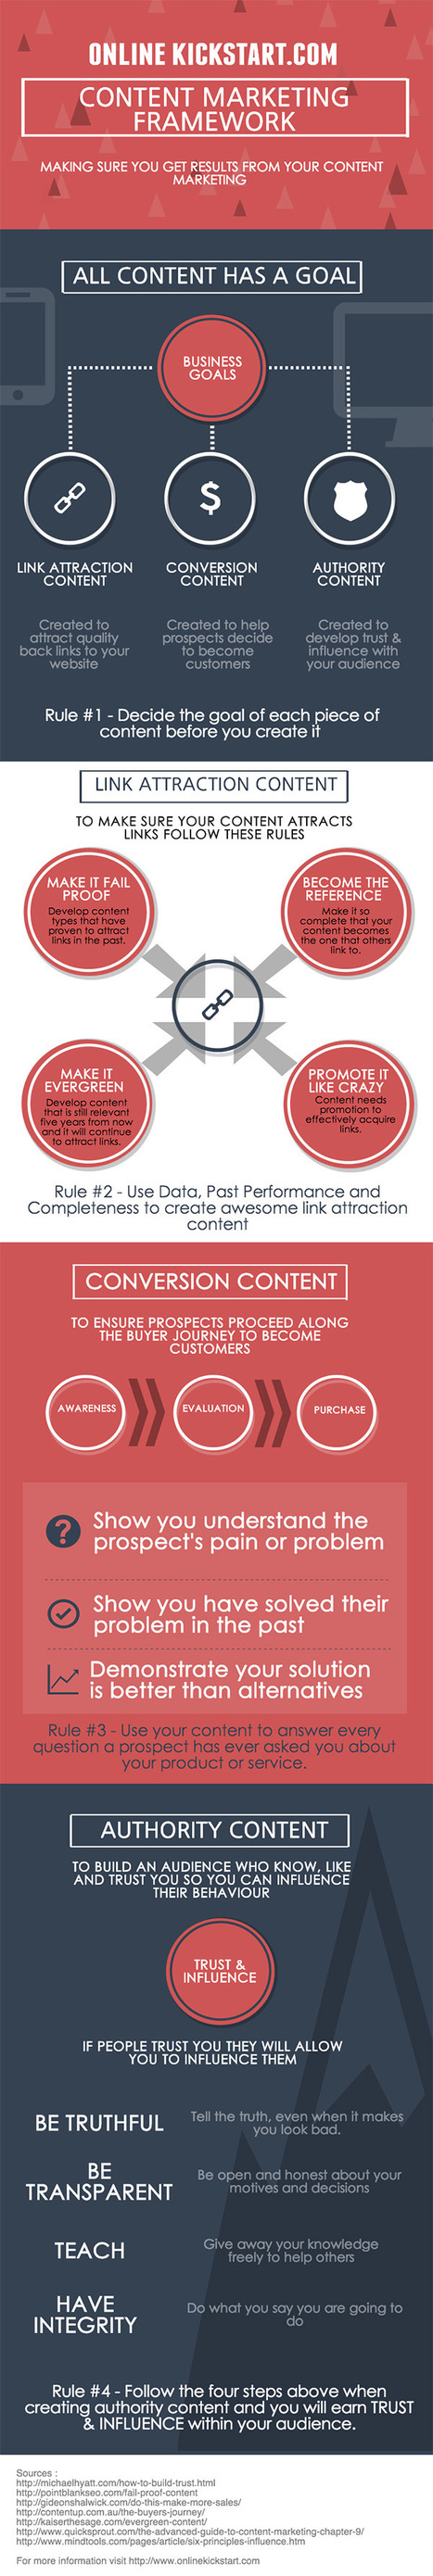 12 Hot Tips to Create a Formidable Content Marketing Strategy | infografias - infographics | Scoop.it